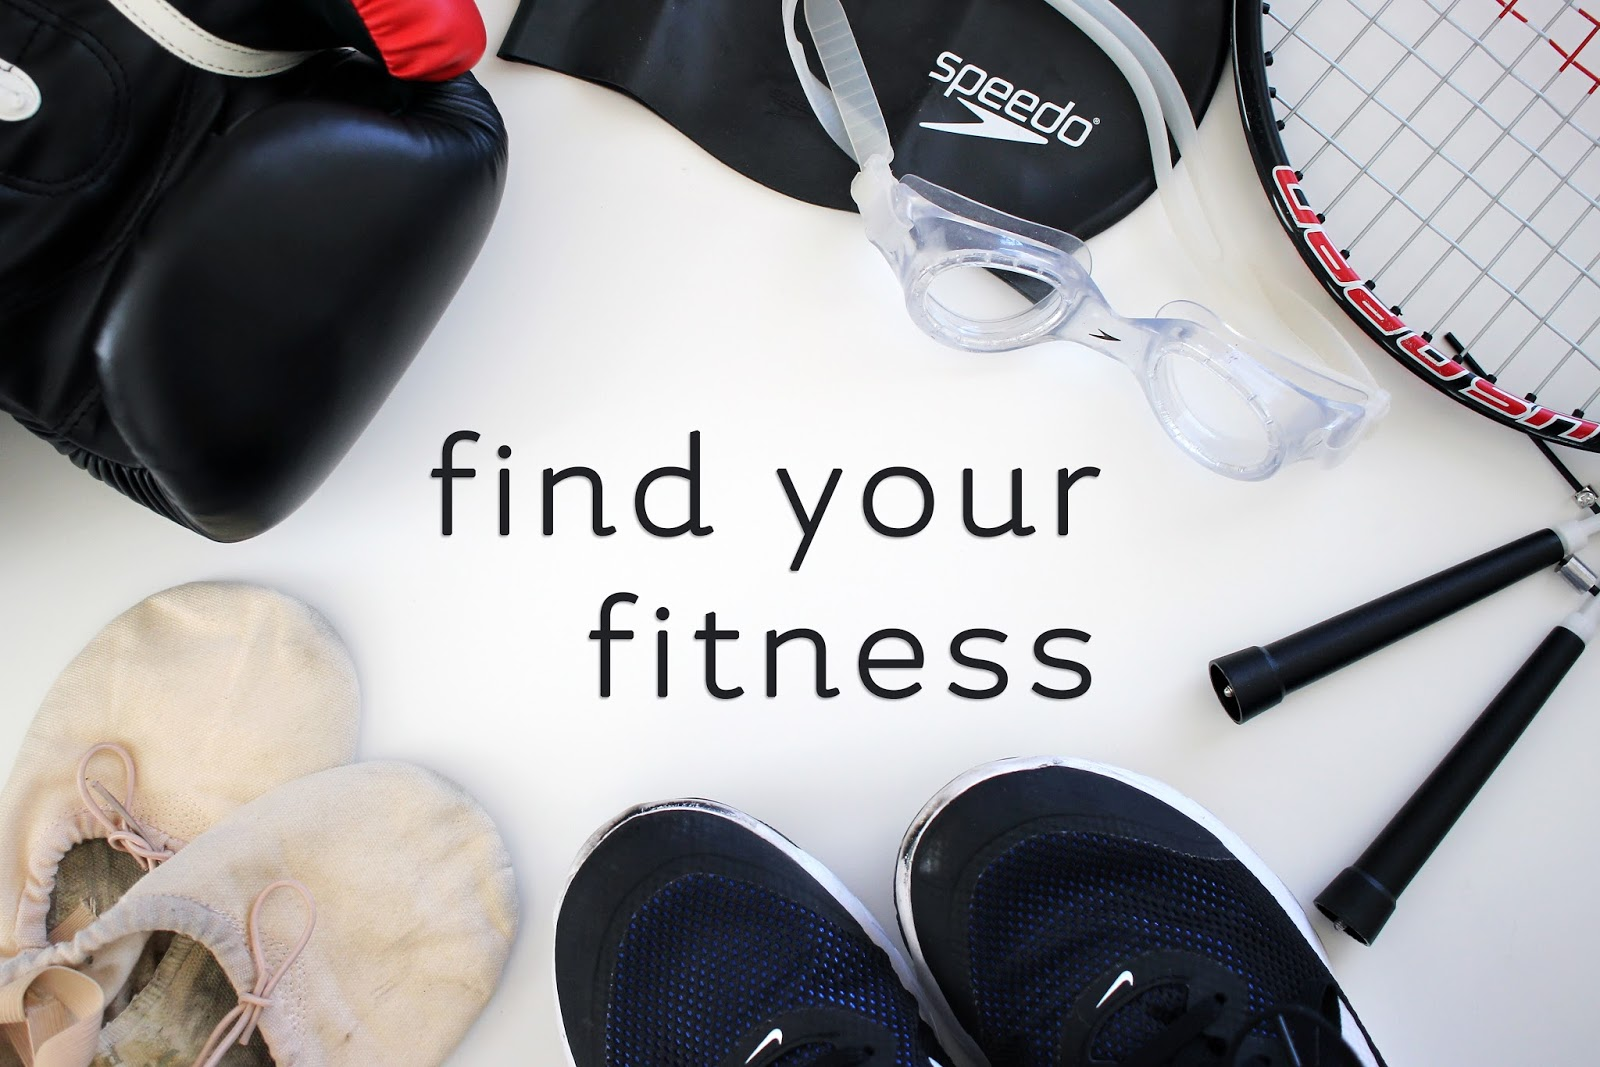 Tips to help you Find your Fitness! Exercise can be fun, all you have to do it find the right fit for you.